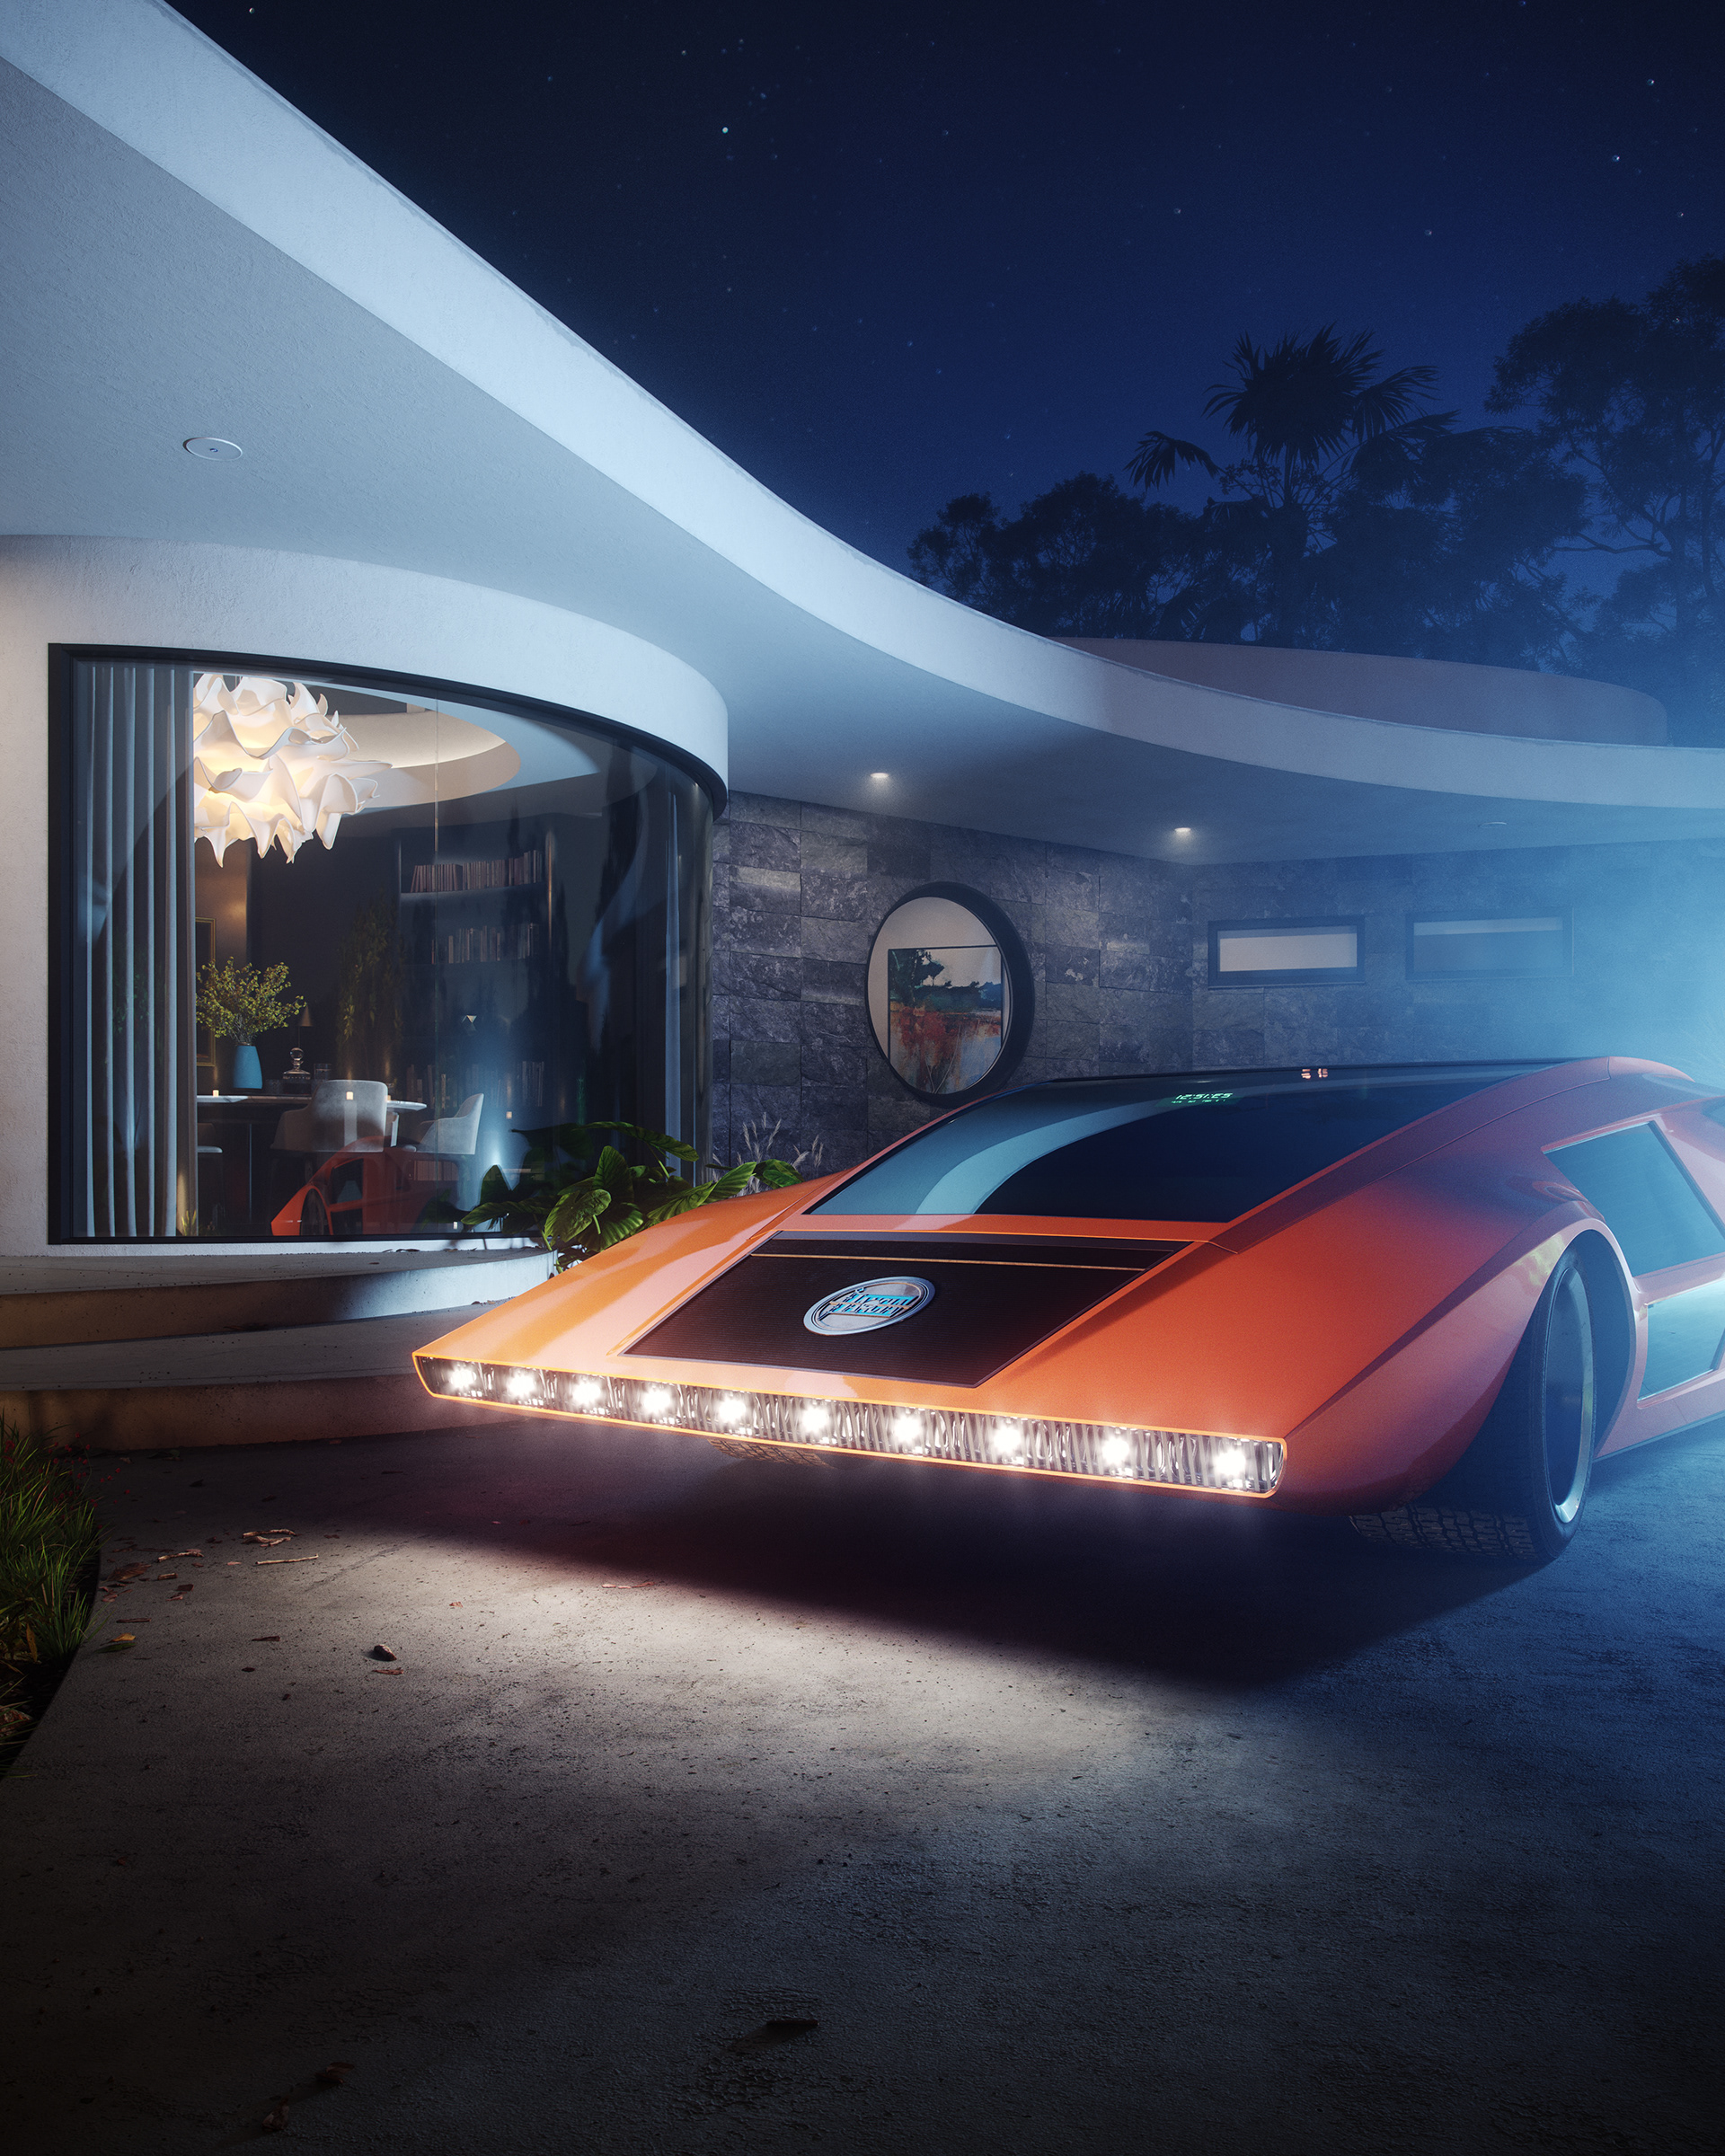 CGI Recreation of the iconic Lancia Stratos HF Zero